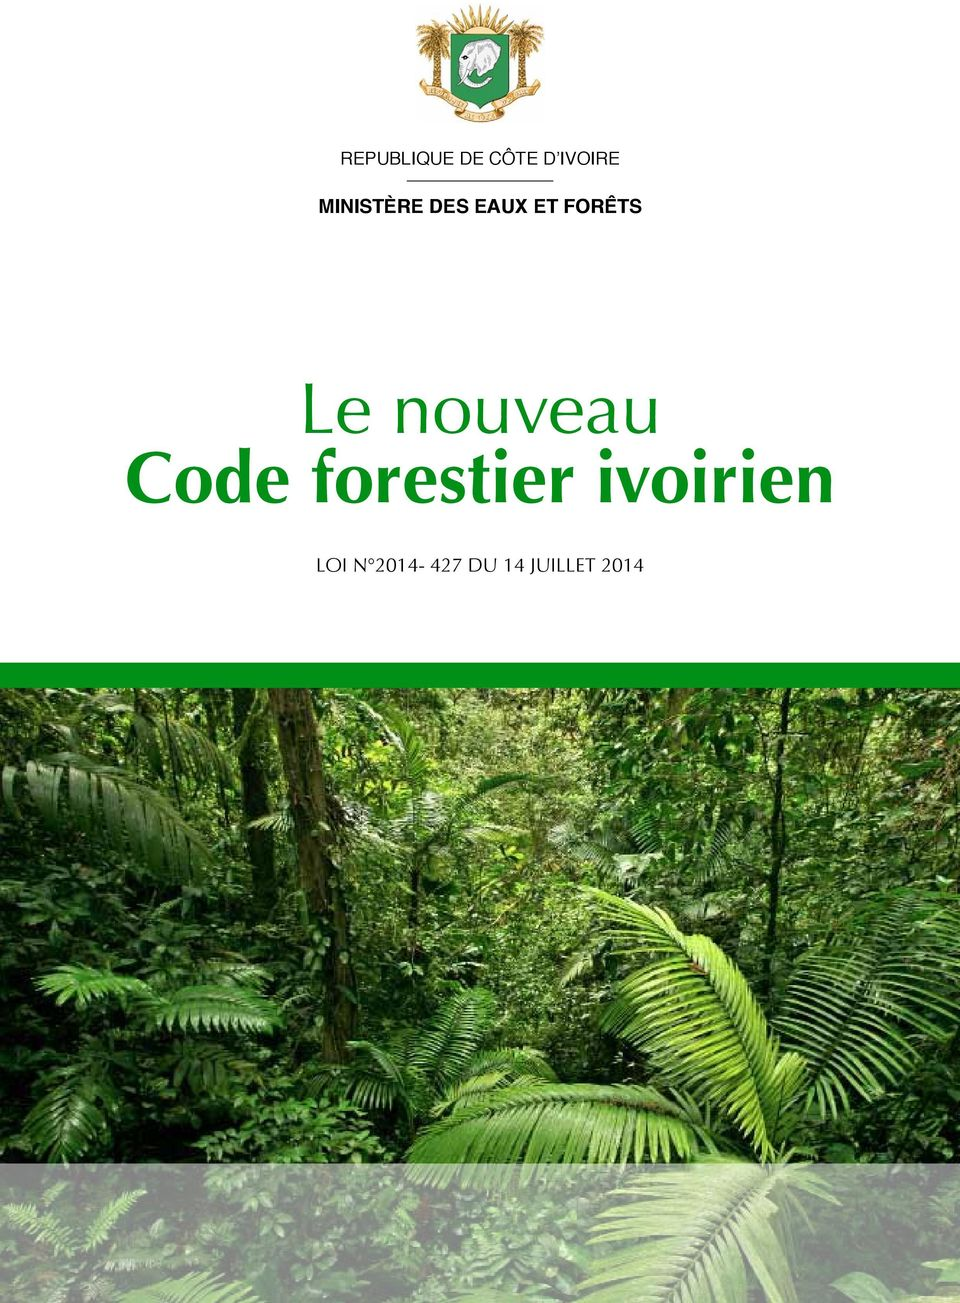 Minist re des eaux et for ts le nouveau code forestier for Eaux et forets